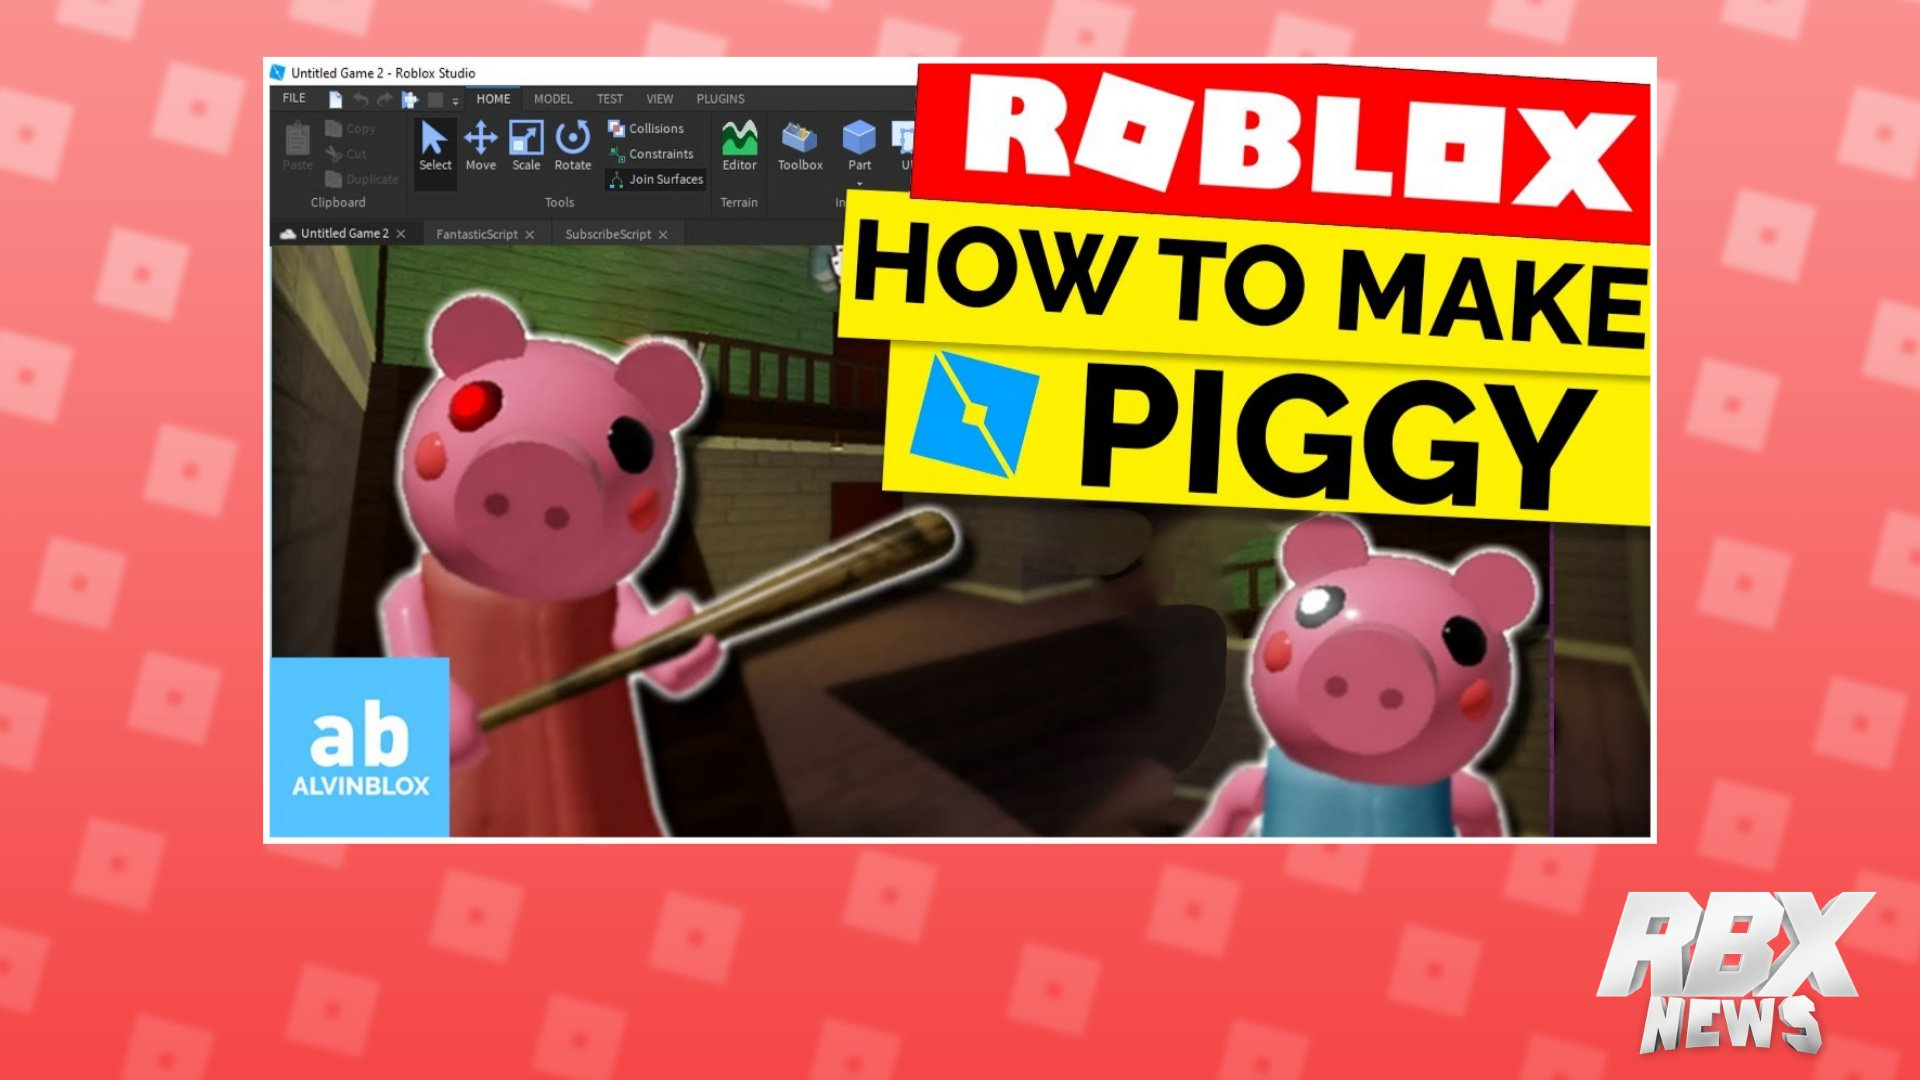 Roblox Piggy Game Icon Rbxnews On Twitter Want To Make Your Very Own Roblox Piggy Game Well Alvinblox Has A Tutorial On How To Do So He Ll Teach You How To Make Script And Setup